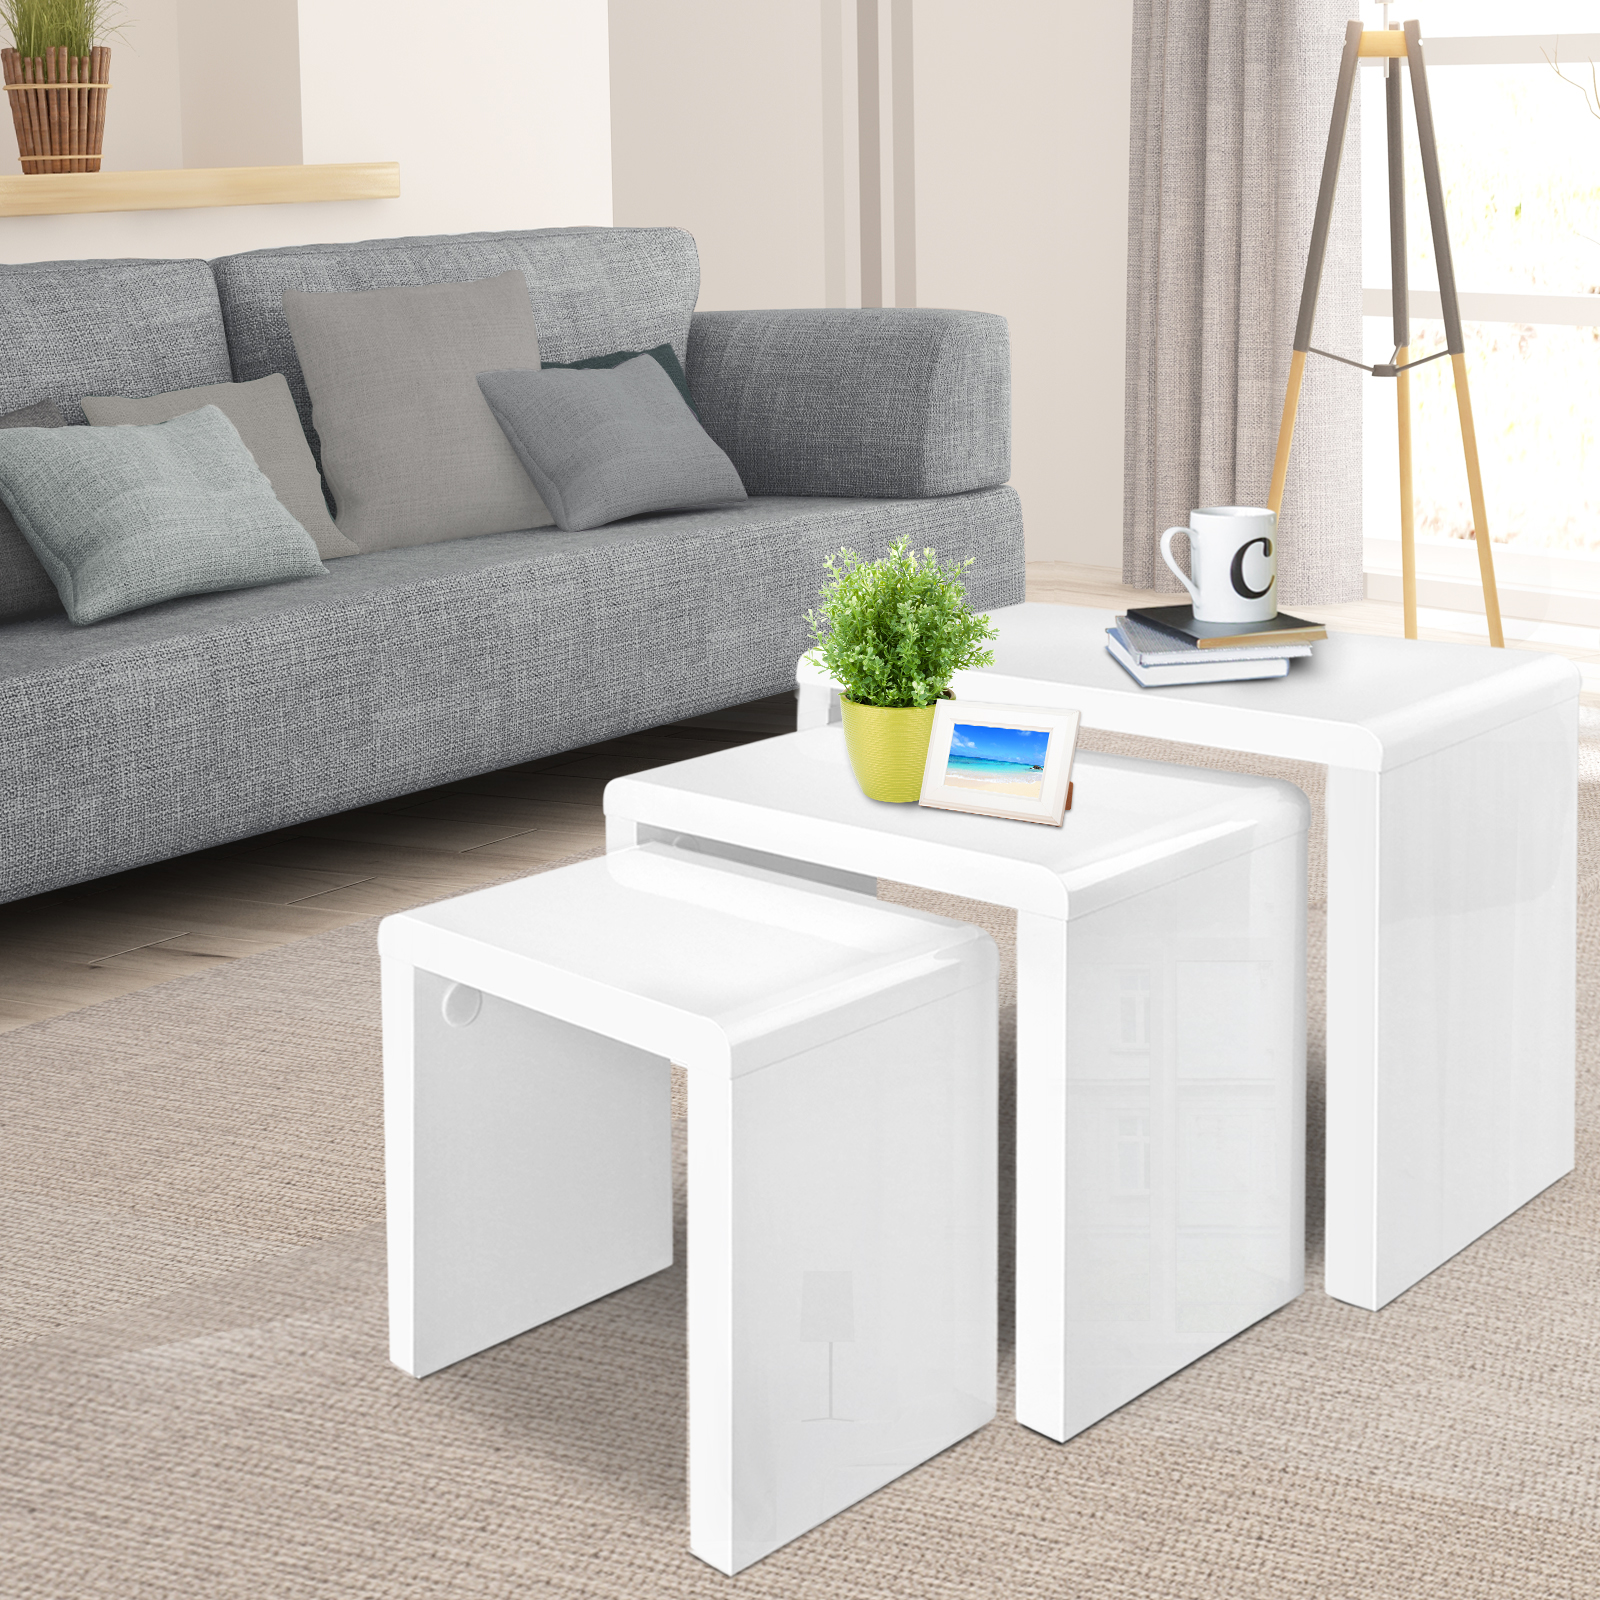 High Gloss 3 Side Nested Of Tables White Set Coffee Table: Set Of 3 Nest Tables High Gloss Side Wooden Coffee Nesting